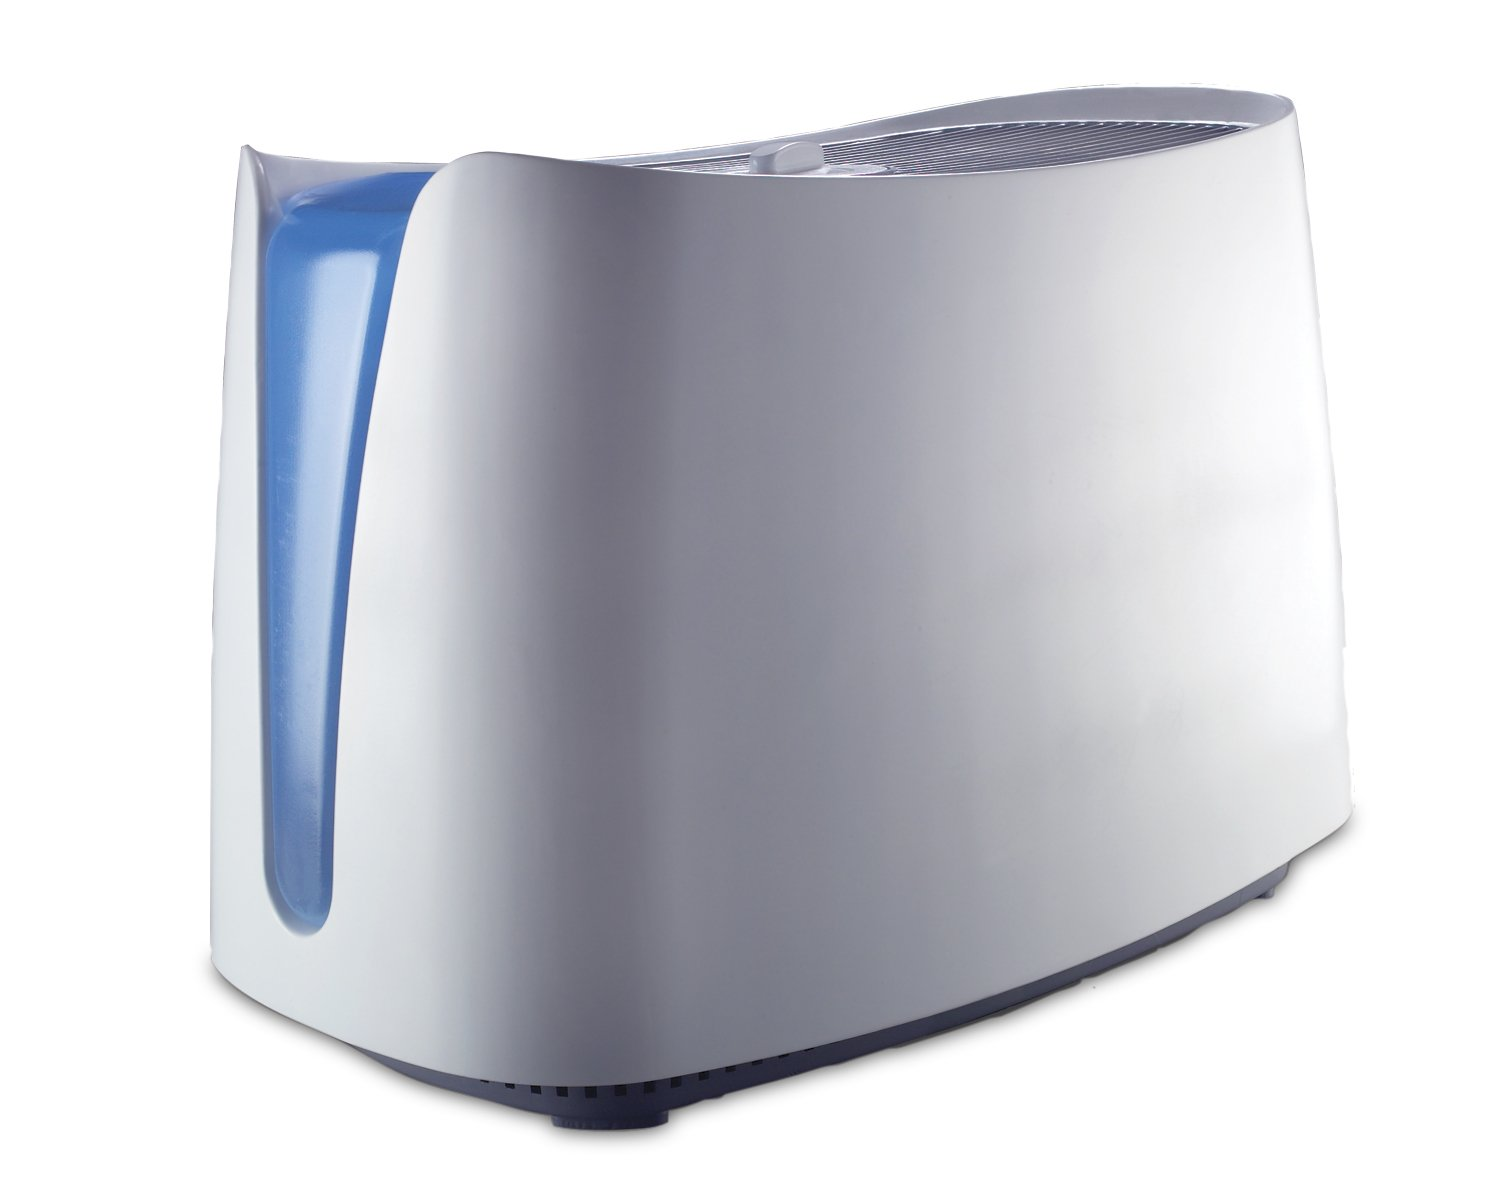 Best Honeywell Humidifiers: HCM350W